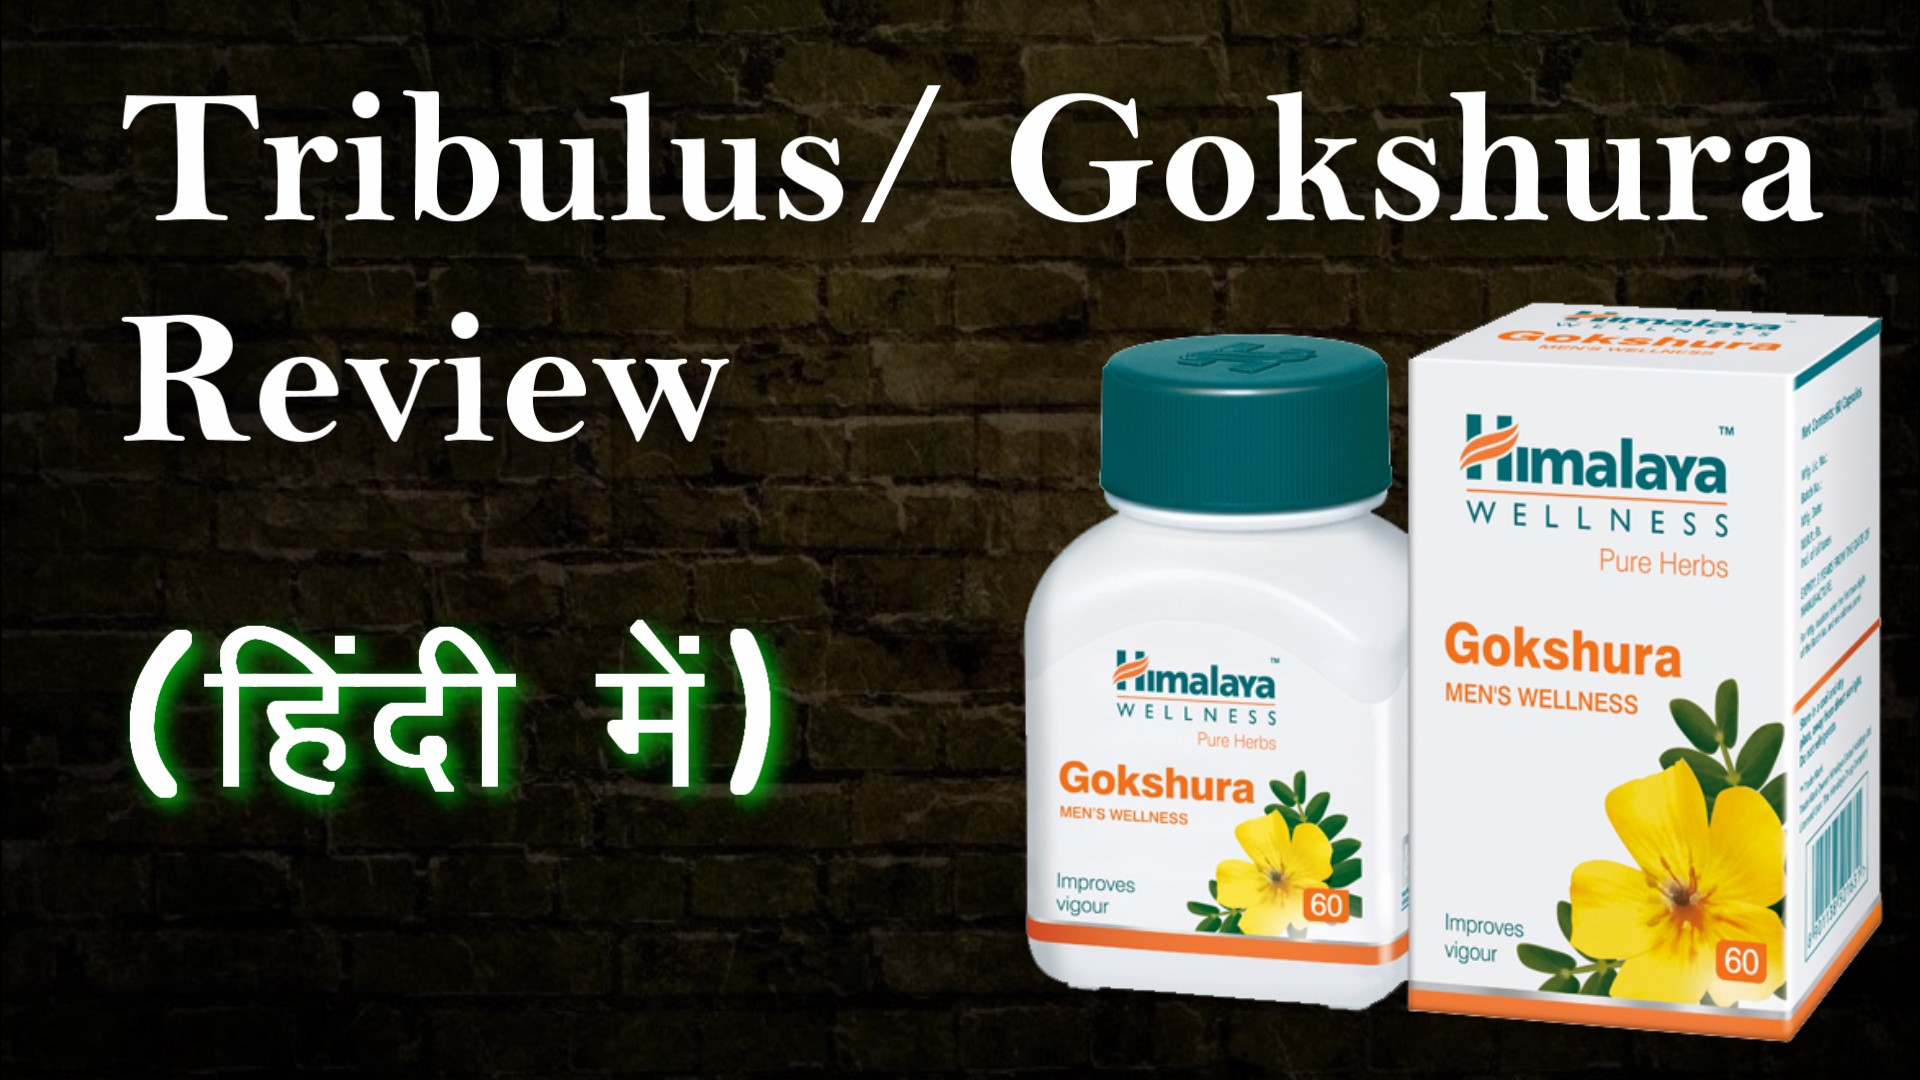 Gokshura as a test booster | Tribulus Review